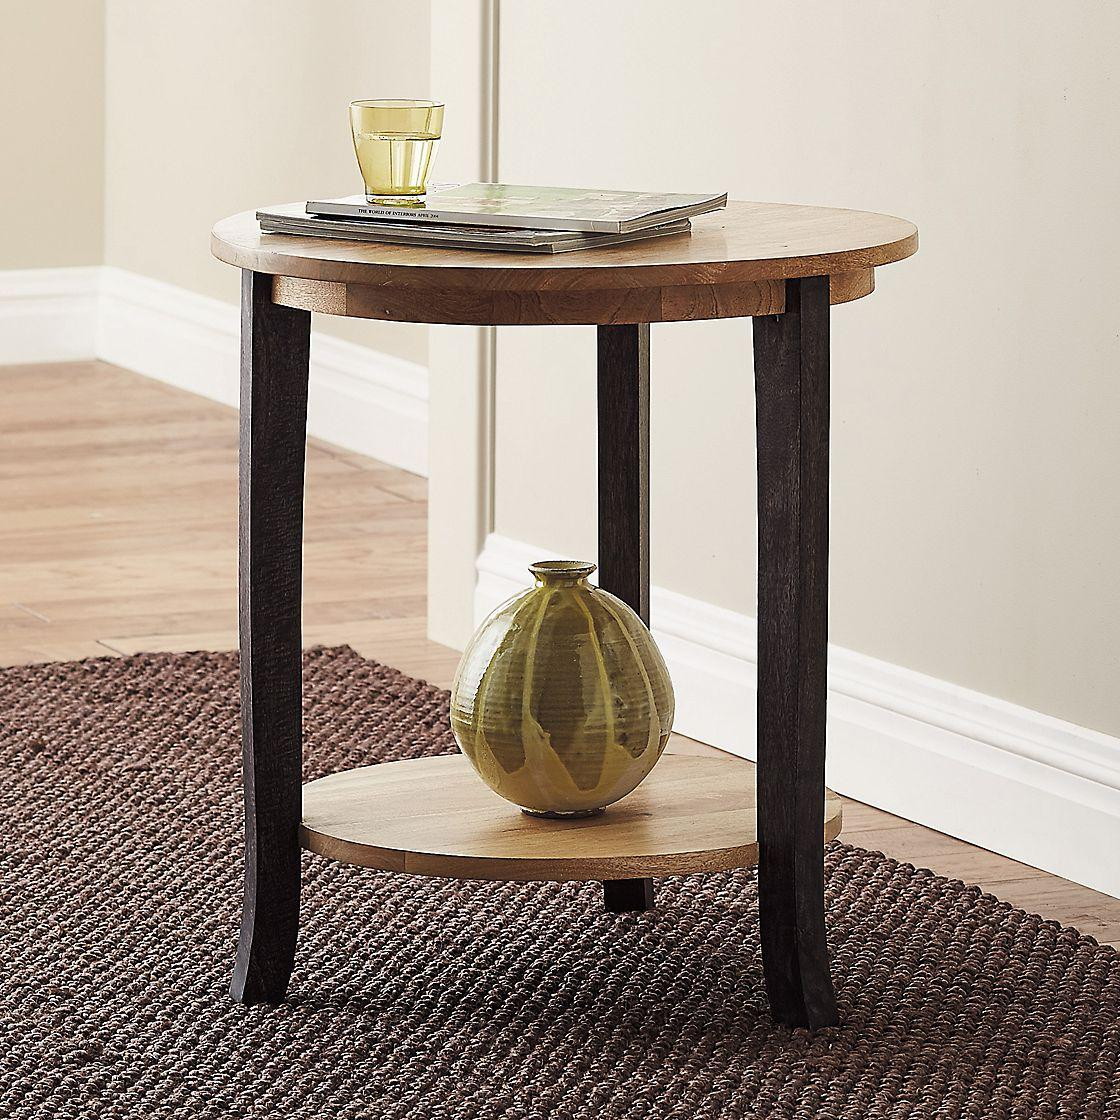 side tables supply usafurnishingsdepot brandt accent table ottawa brown gray modern metal and glass coffee round wood dresser trunk chest pottery barn living room chairs butterfly